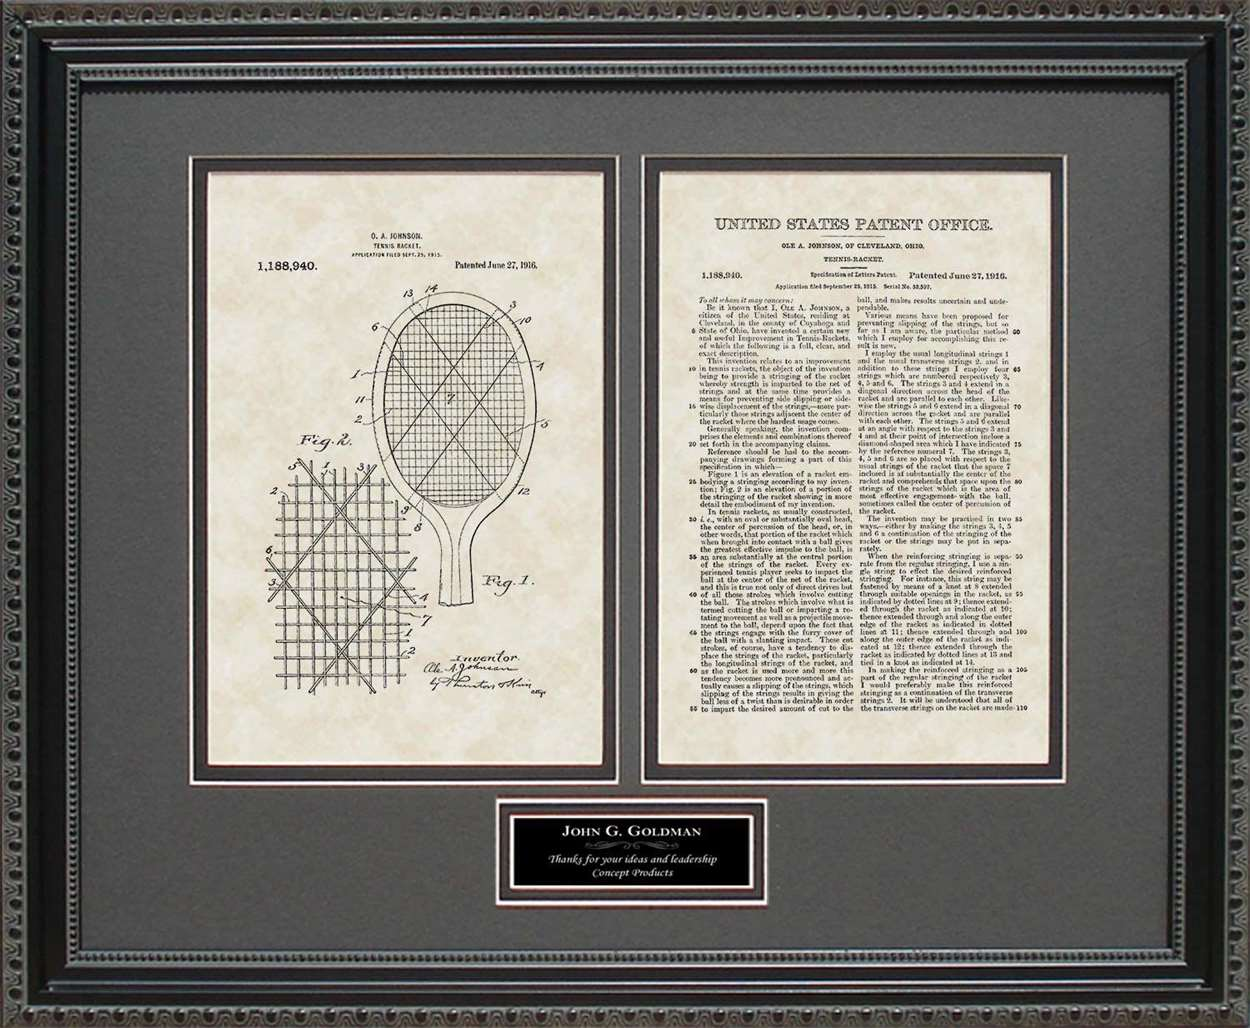 Personalized Tennis Racket Patent, Art & Copy, Johnson, 1916